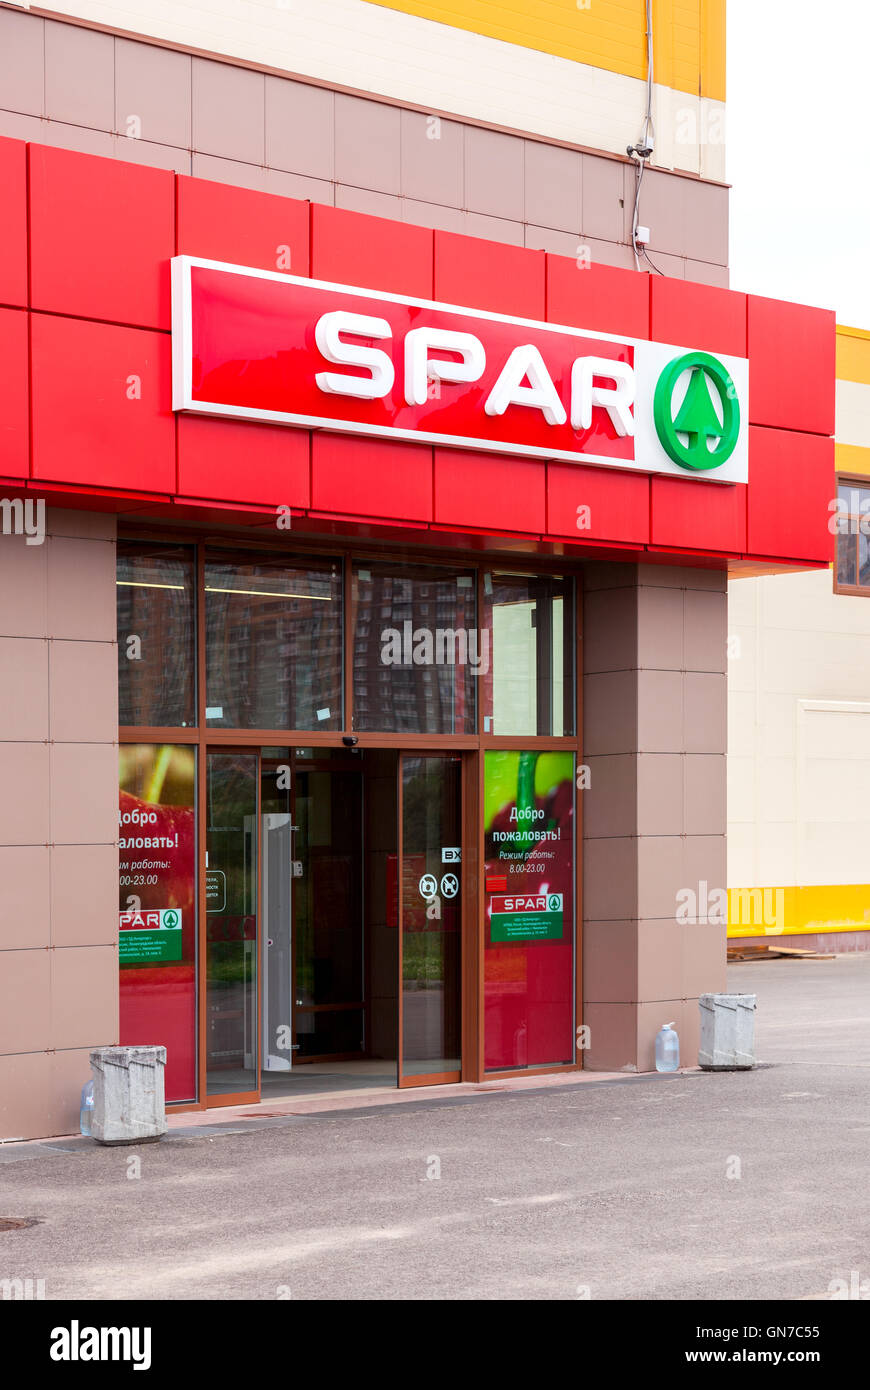 Supermarket SPAR is an international retail chain and franchise - Stock Image